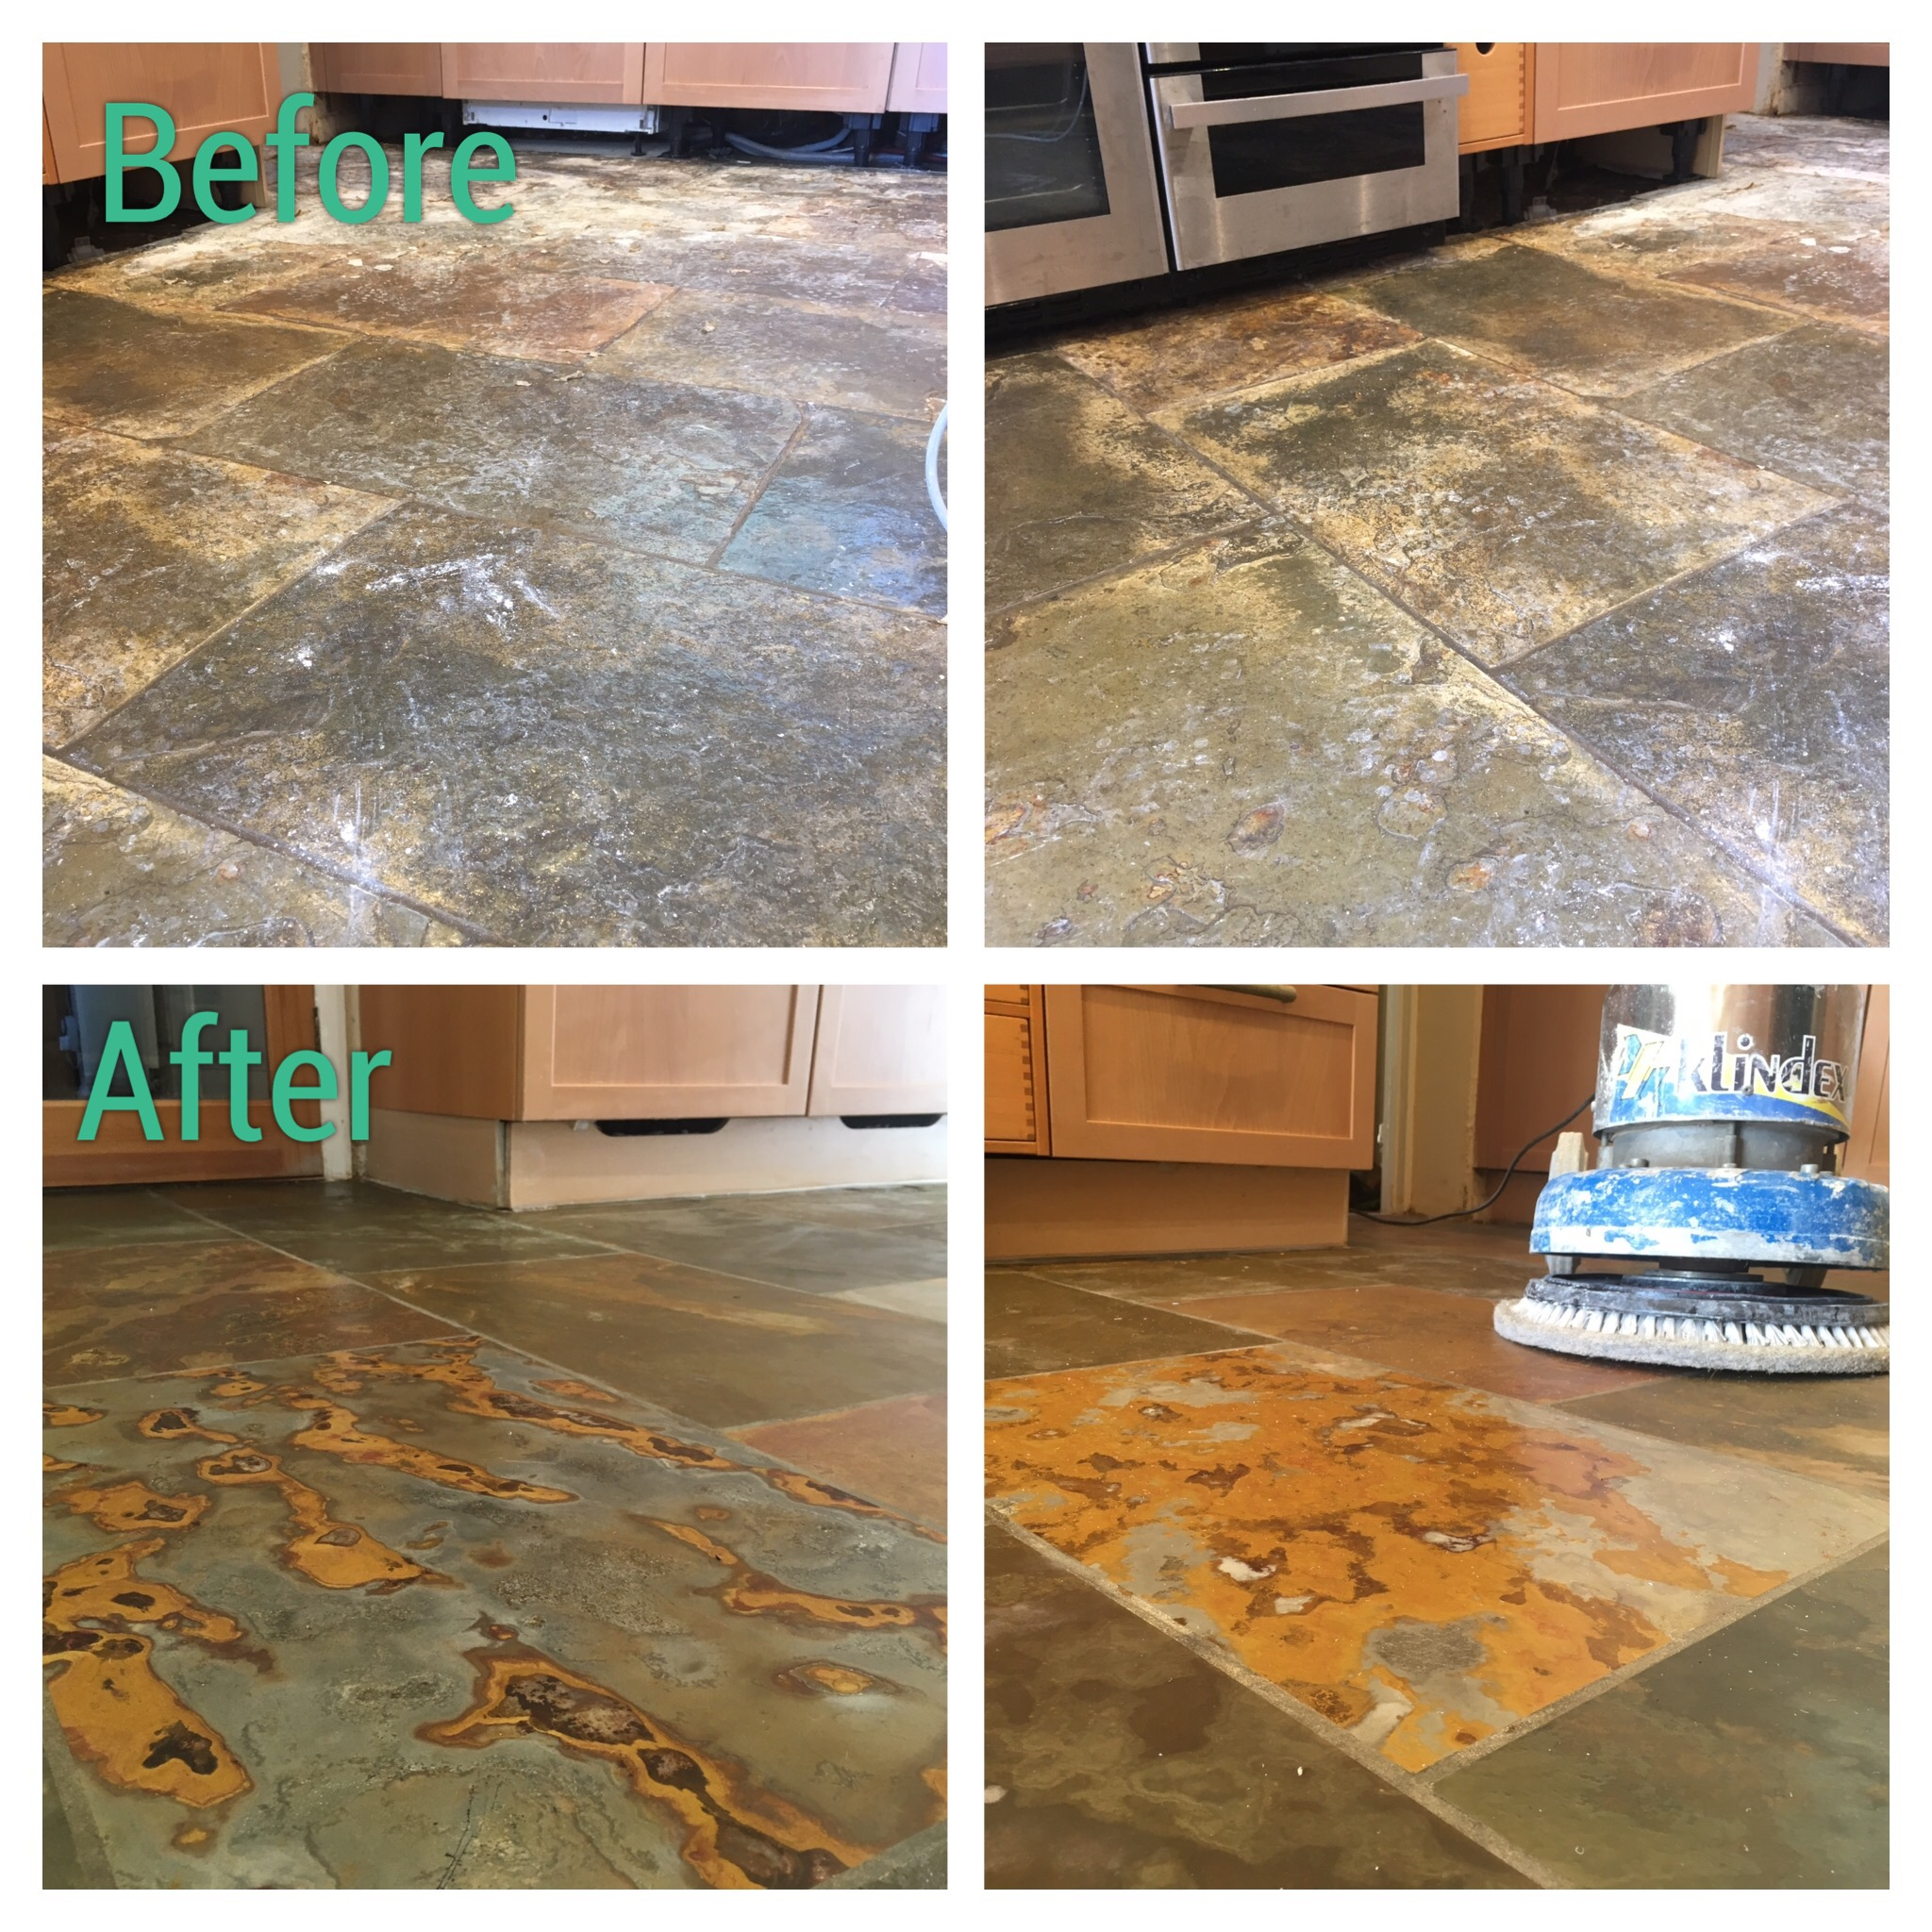 and bishops repair vive re herfordshire drain slate damage seal cleaning tiles revive floor cleaner stortford caustic